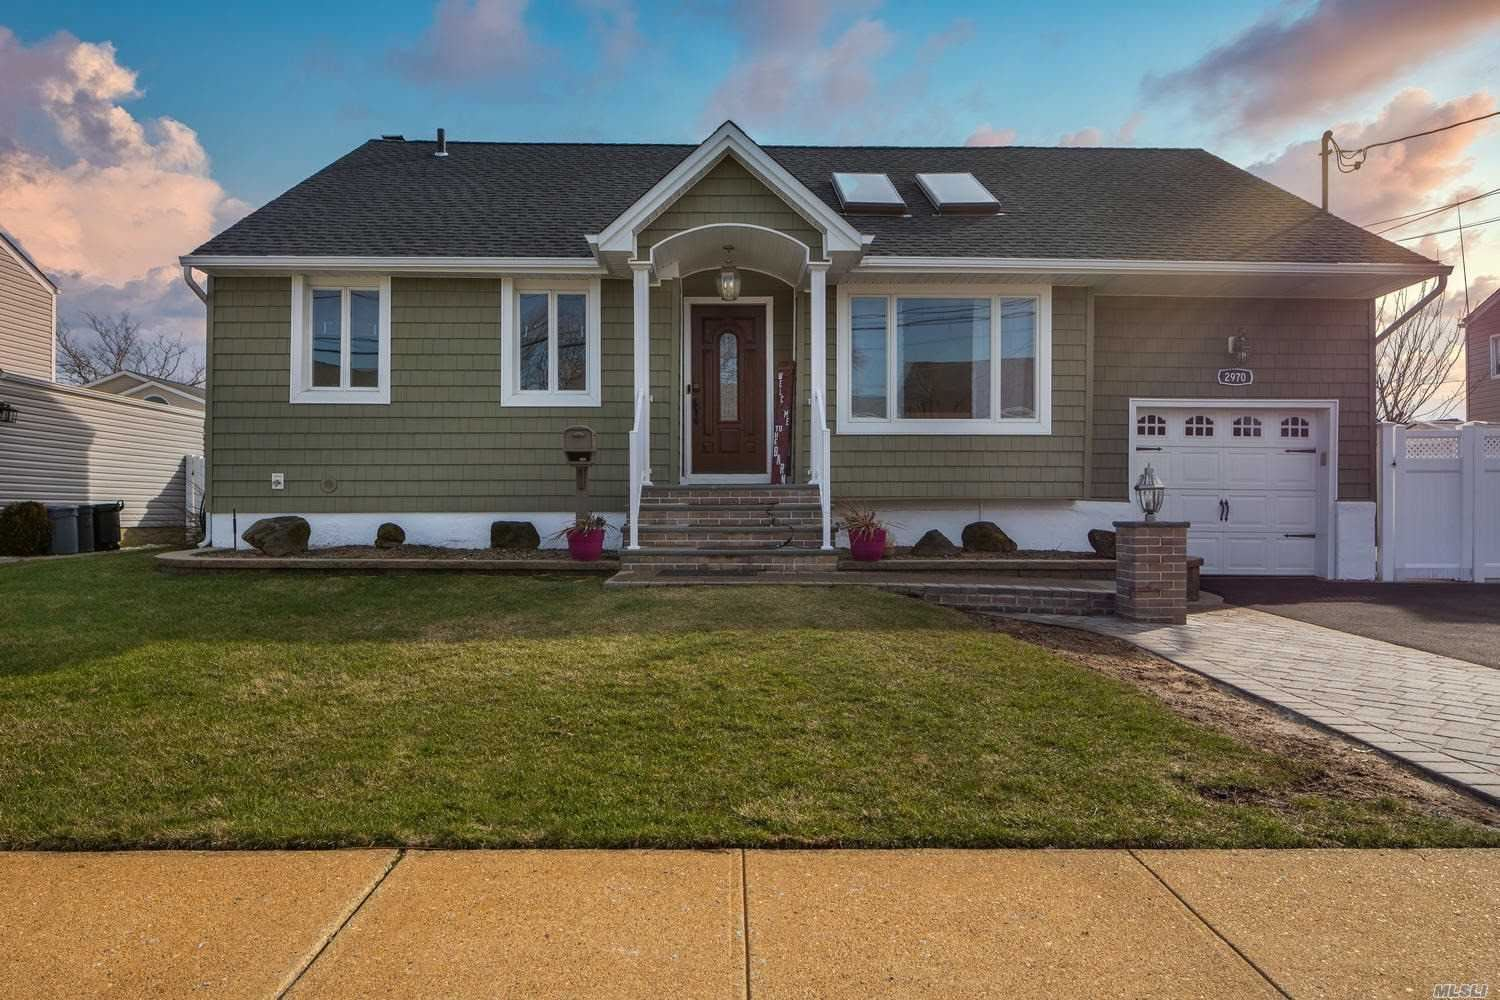 2970 Bayport Ct, Wantagh, NY 11793 - MLS#: 3205052